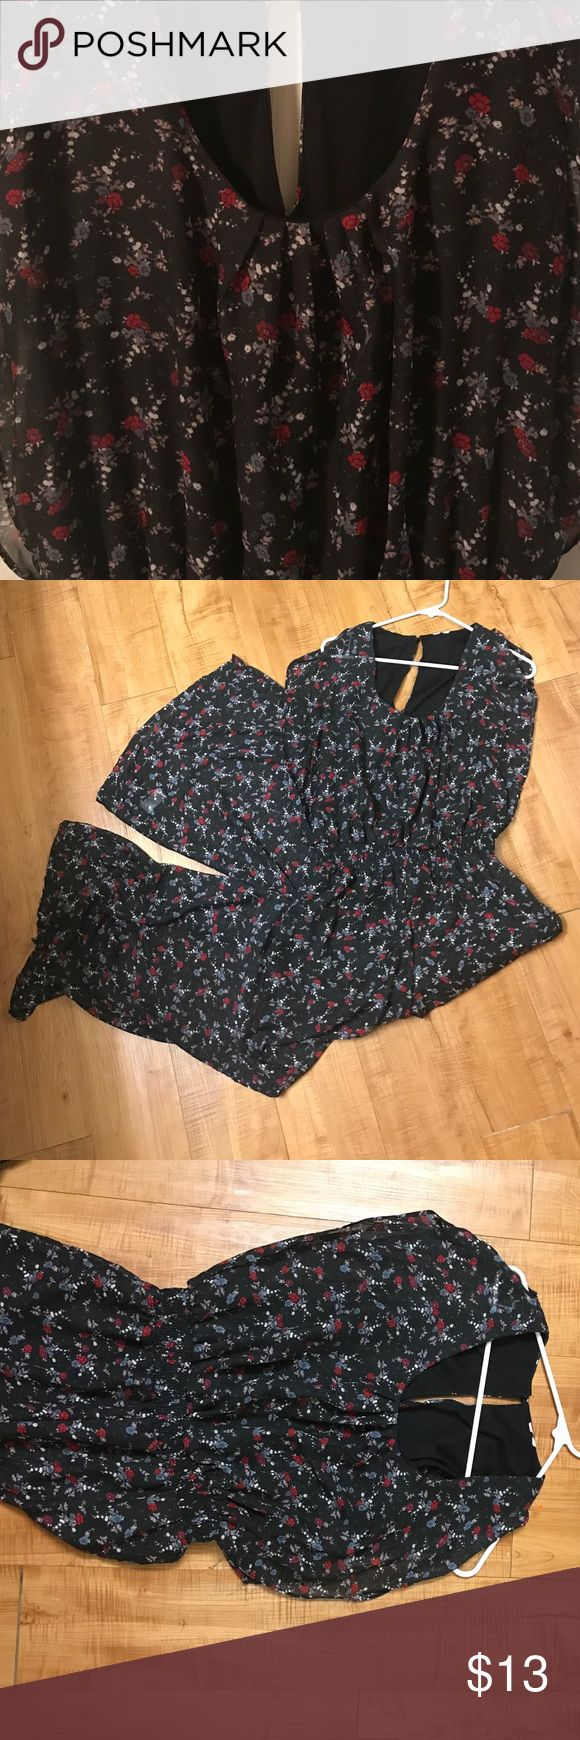 Floral jumper Super cute flowy jumper! In great condition. Tags have been cut off so I don't know exact size but I'd say probably a Large. I'm a L/XL and it fits me everywhere except my hips. Other